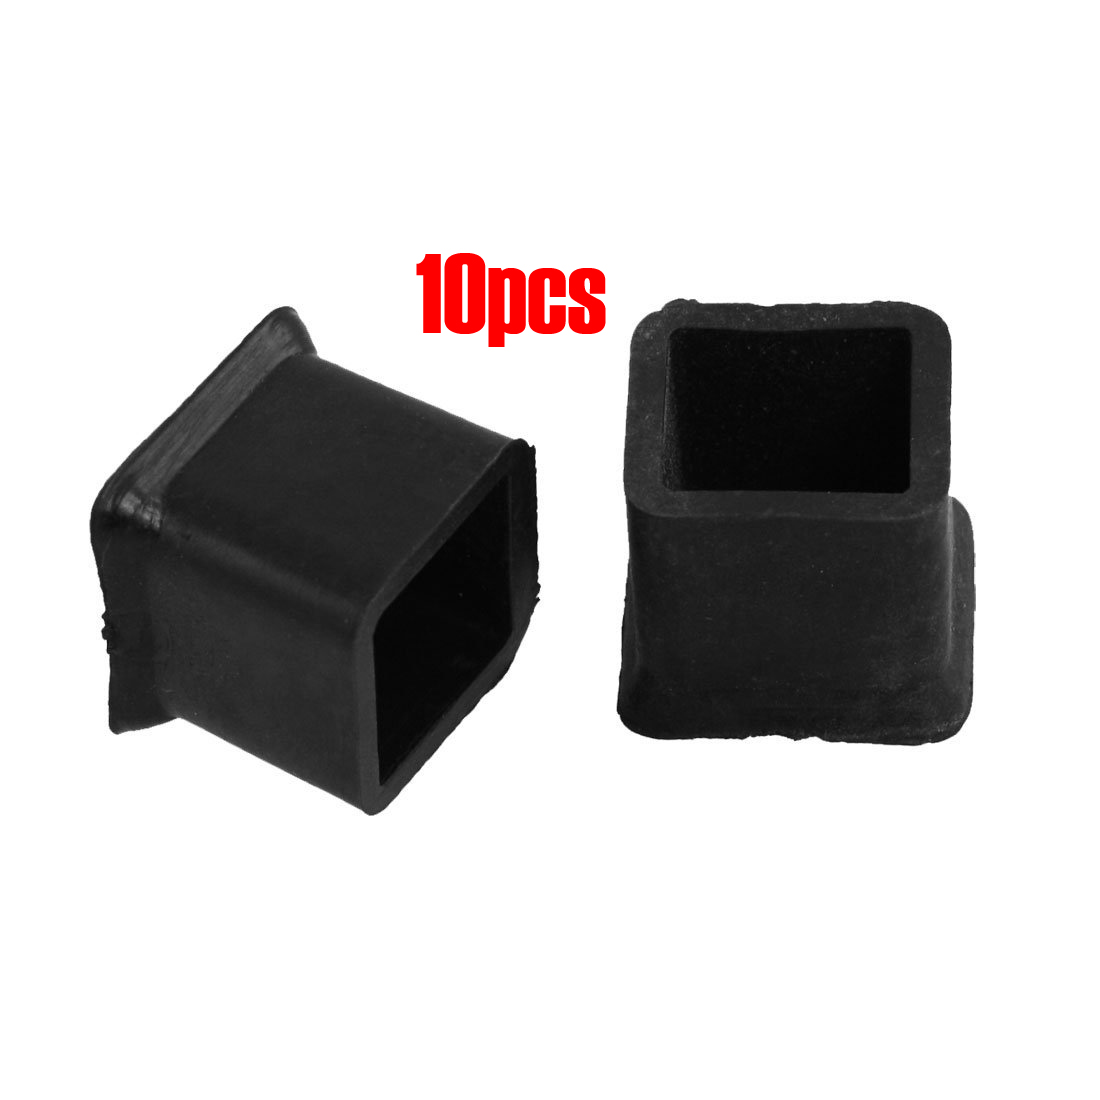 SDFC New 10Pcs Furniture Chair Table Leg Rubber Foot Covers Protectors 20mm X 20mm